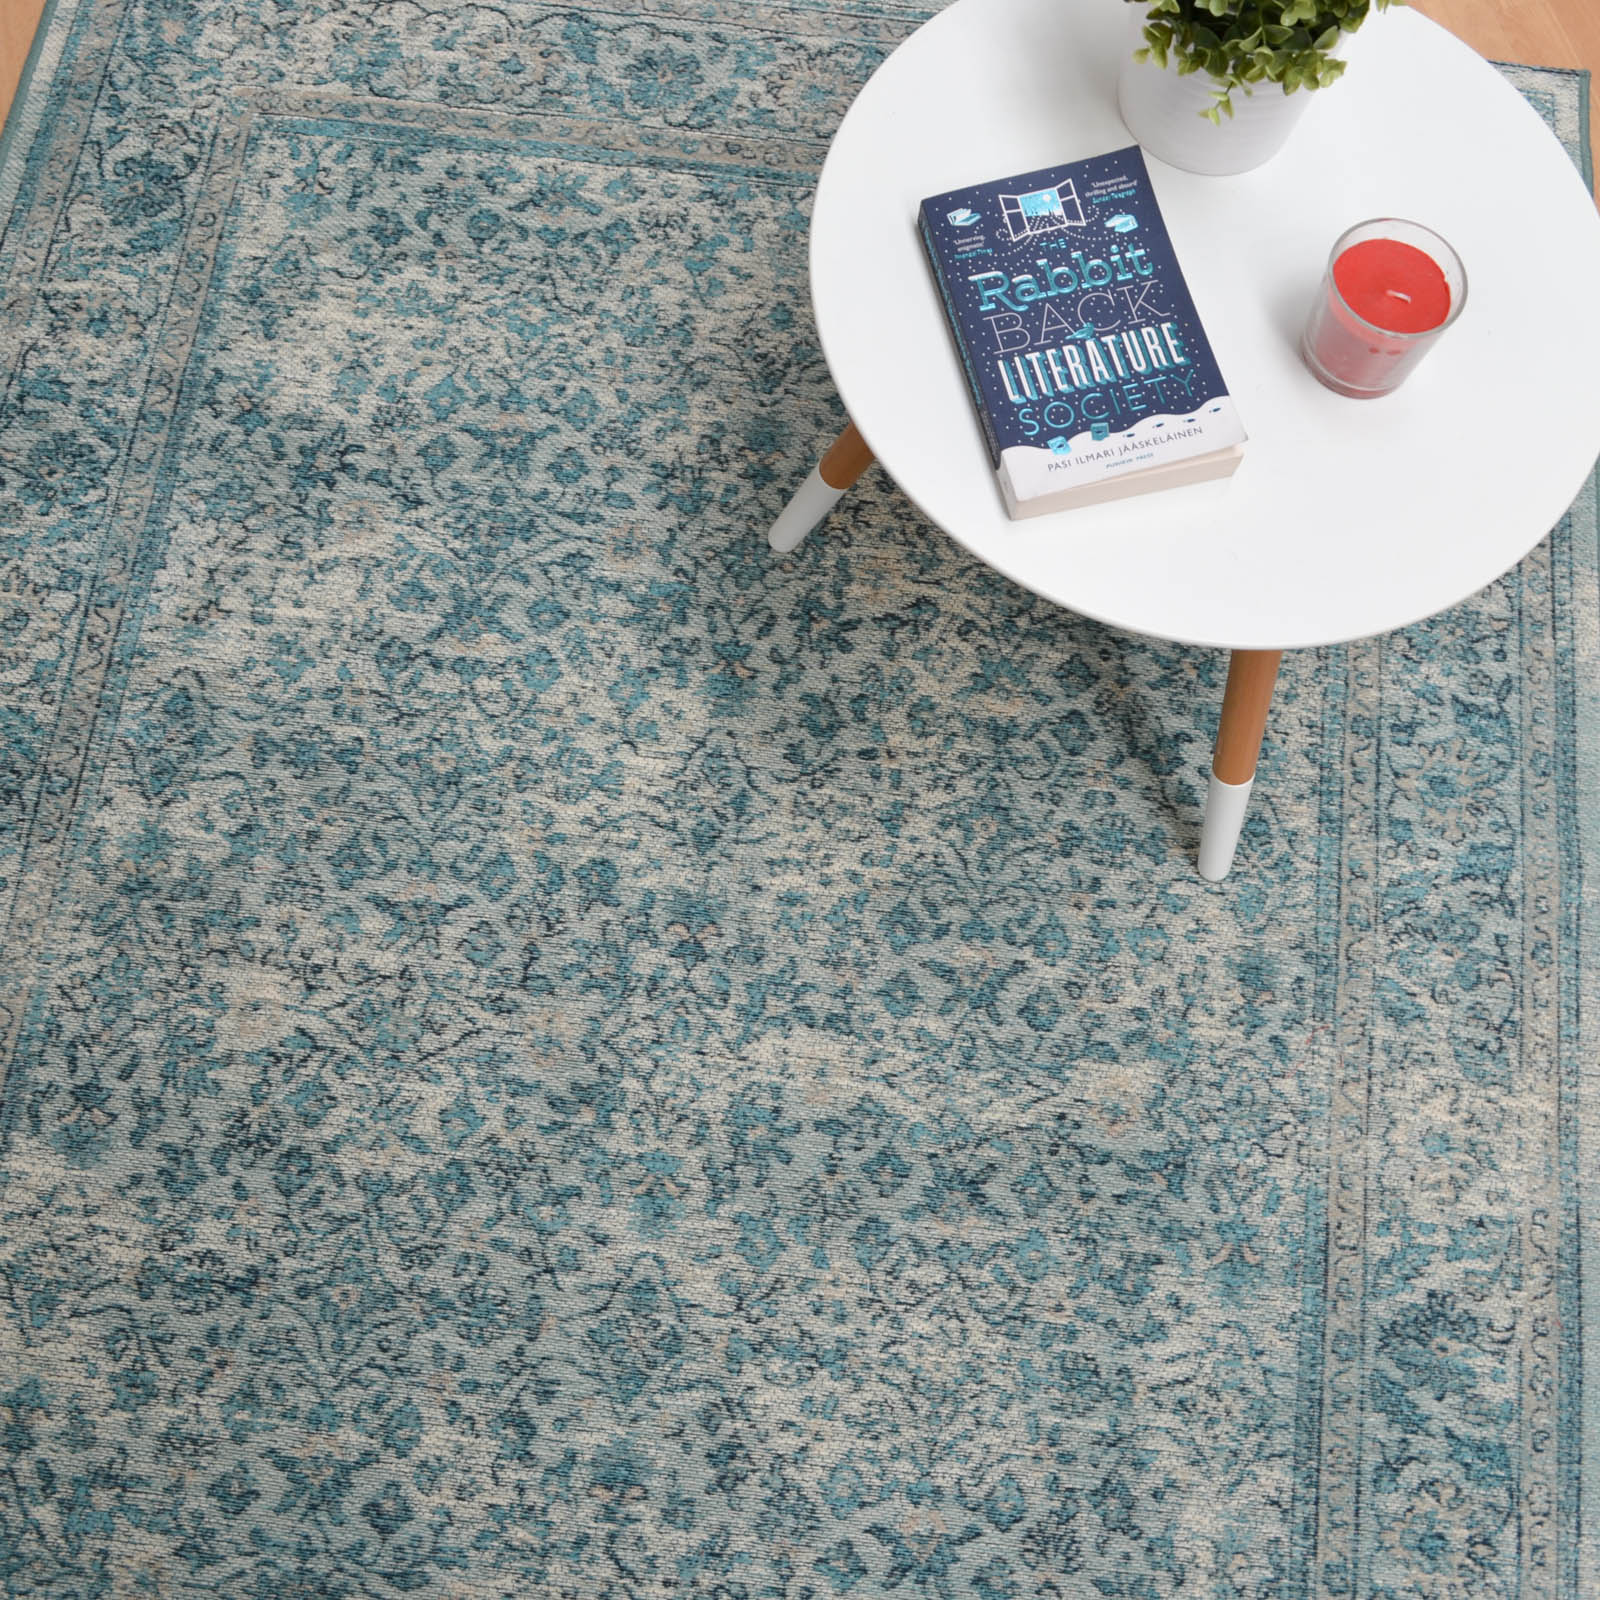 Capri Rugs 91268 5001 in Blue